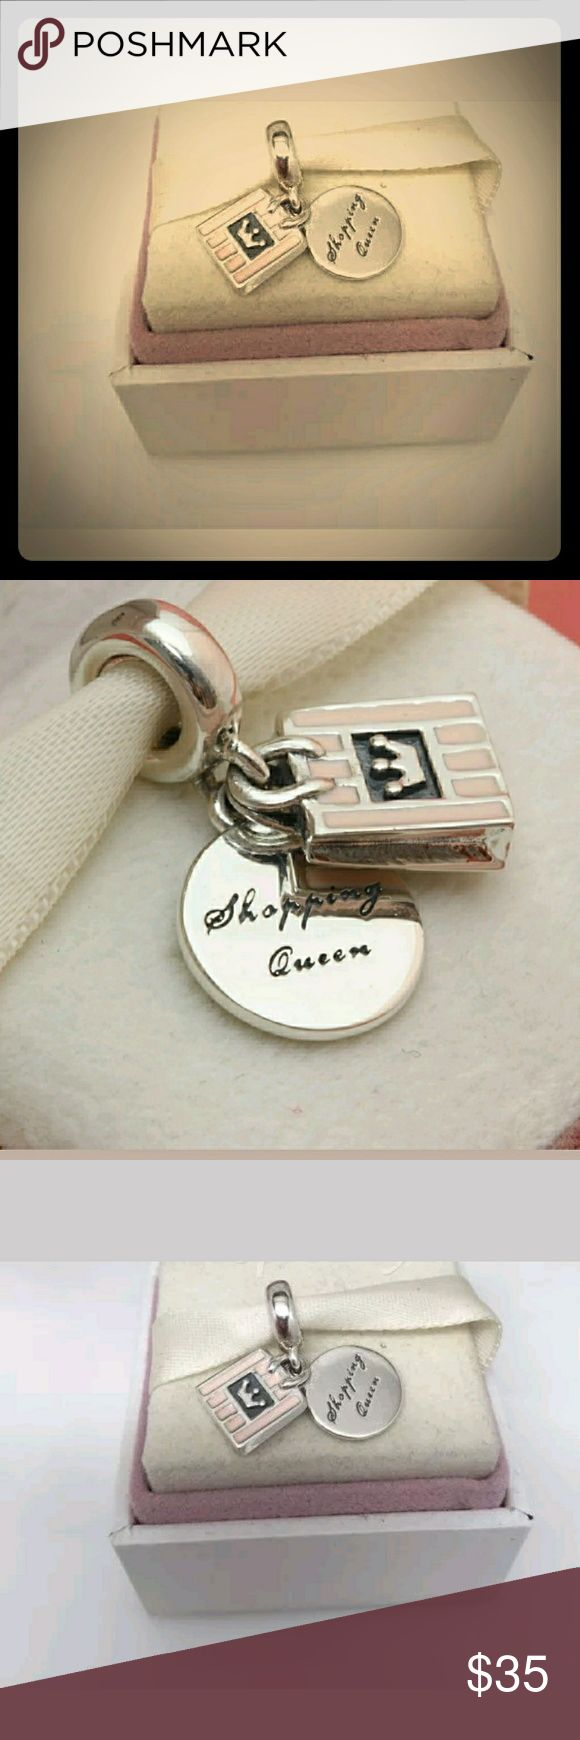 Pandora Shopping Queen Pink Enamel Dangle Charm/NW Pandora Shopping Queen Pink Enamel Dangle Charm Stamped/Ale/s925 Solid Sterling Silver/NWT Pandora Jewelry Bracelets